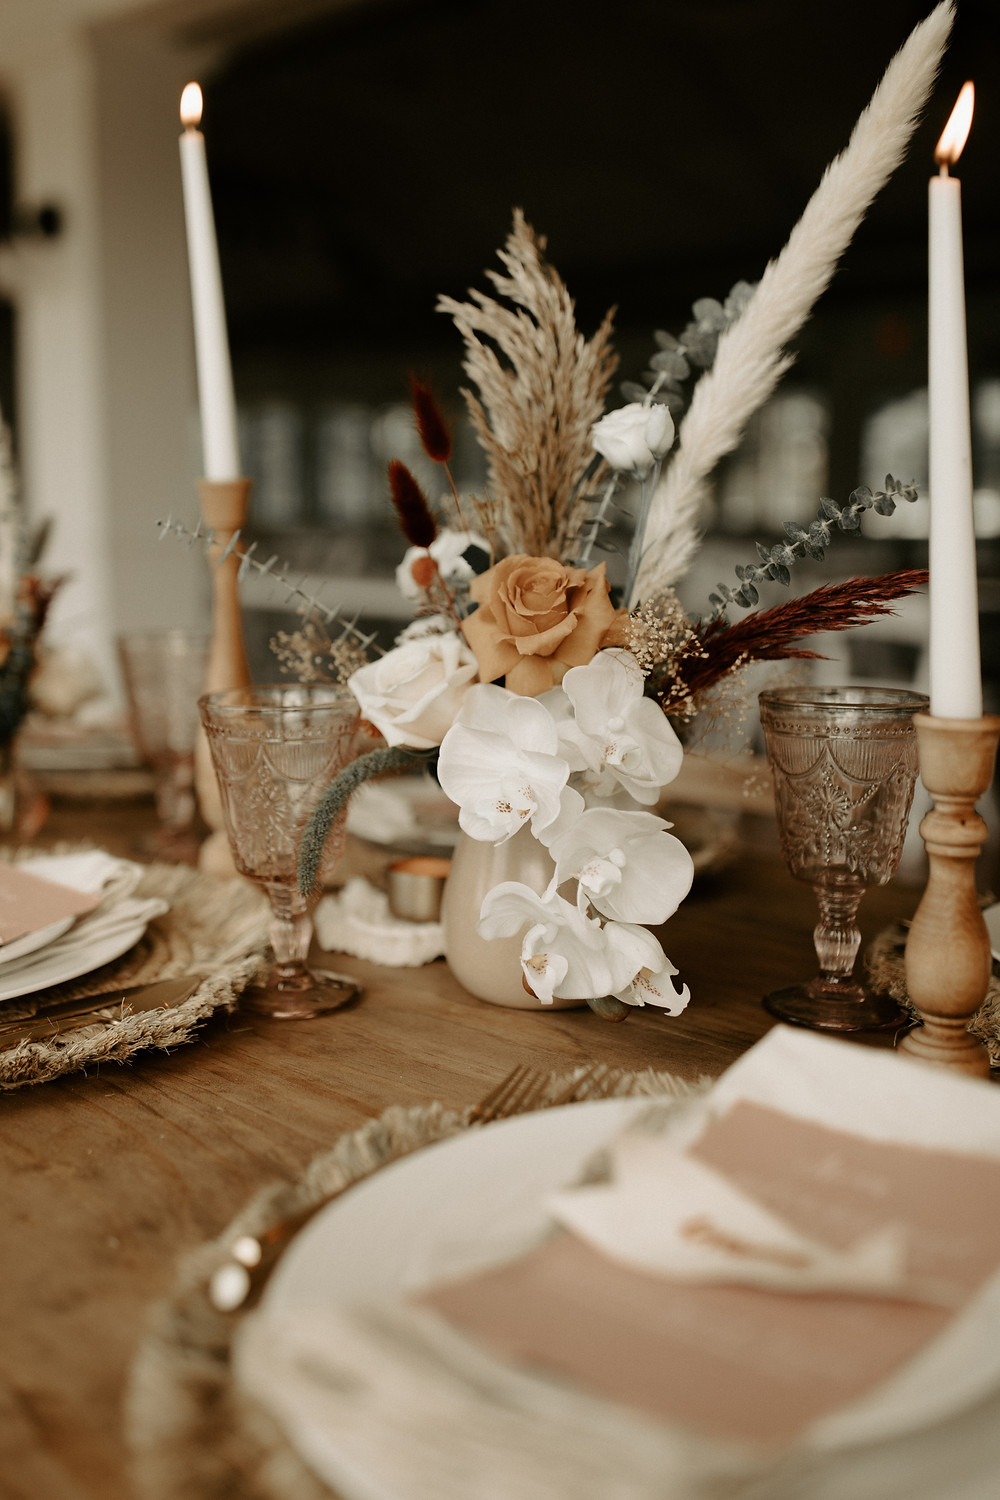 White and orange wedding centerpieces